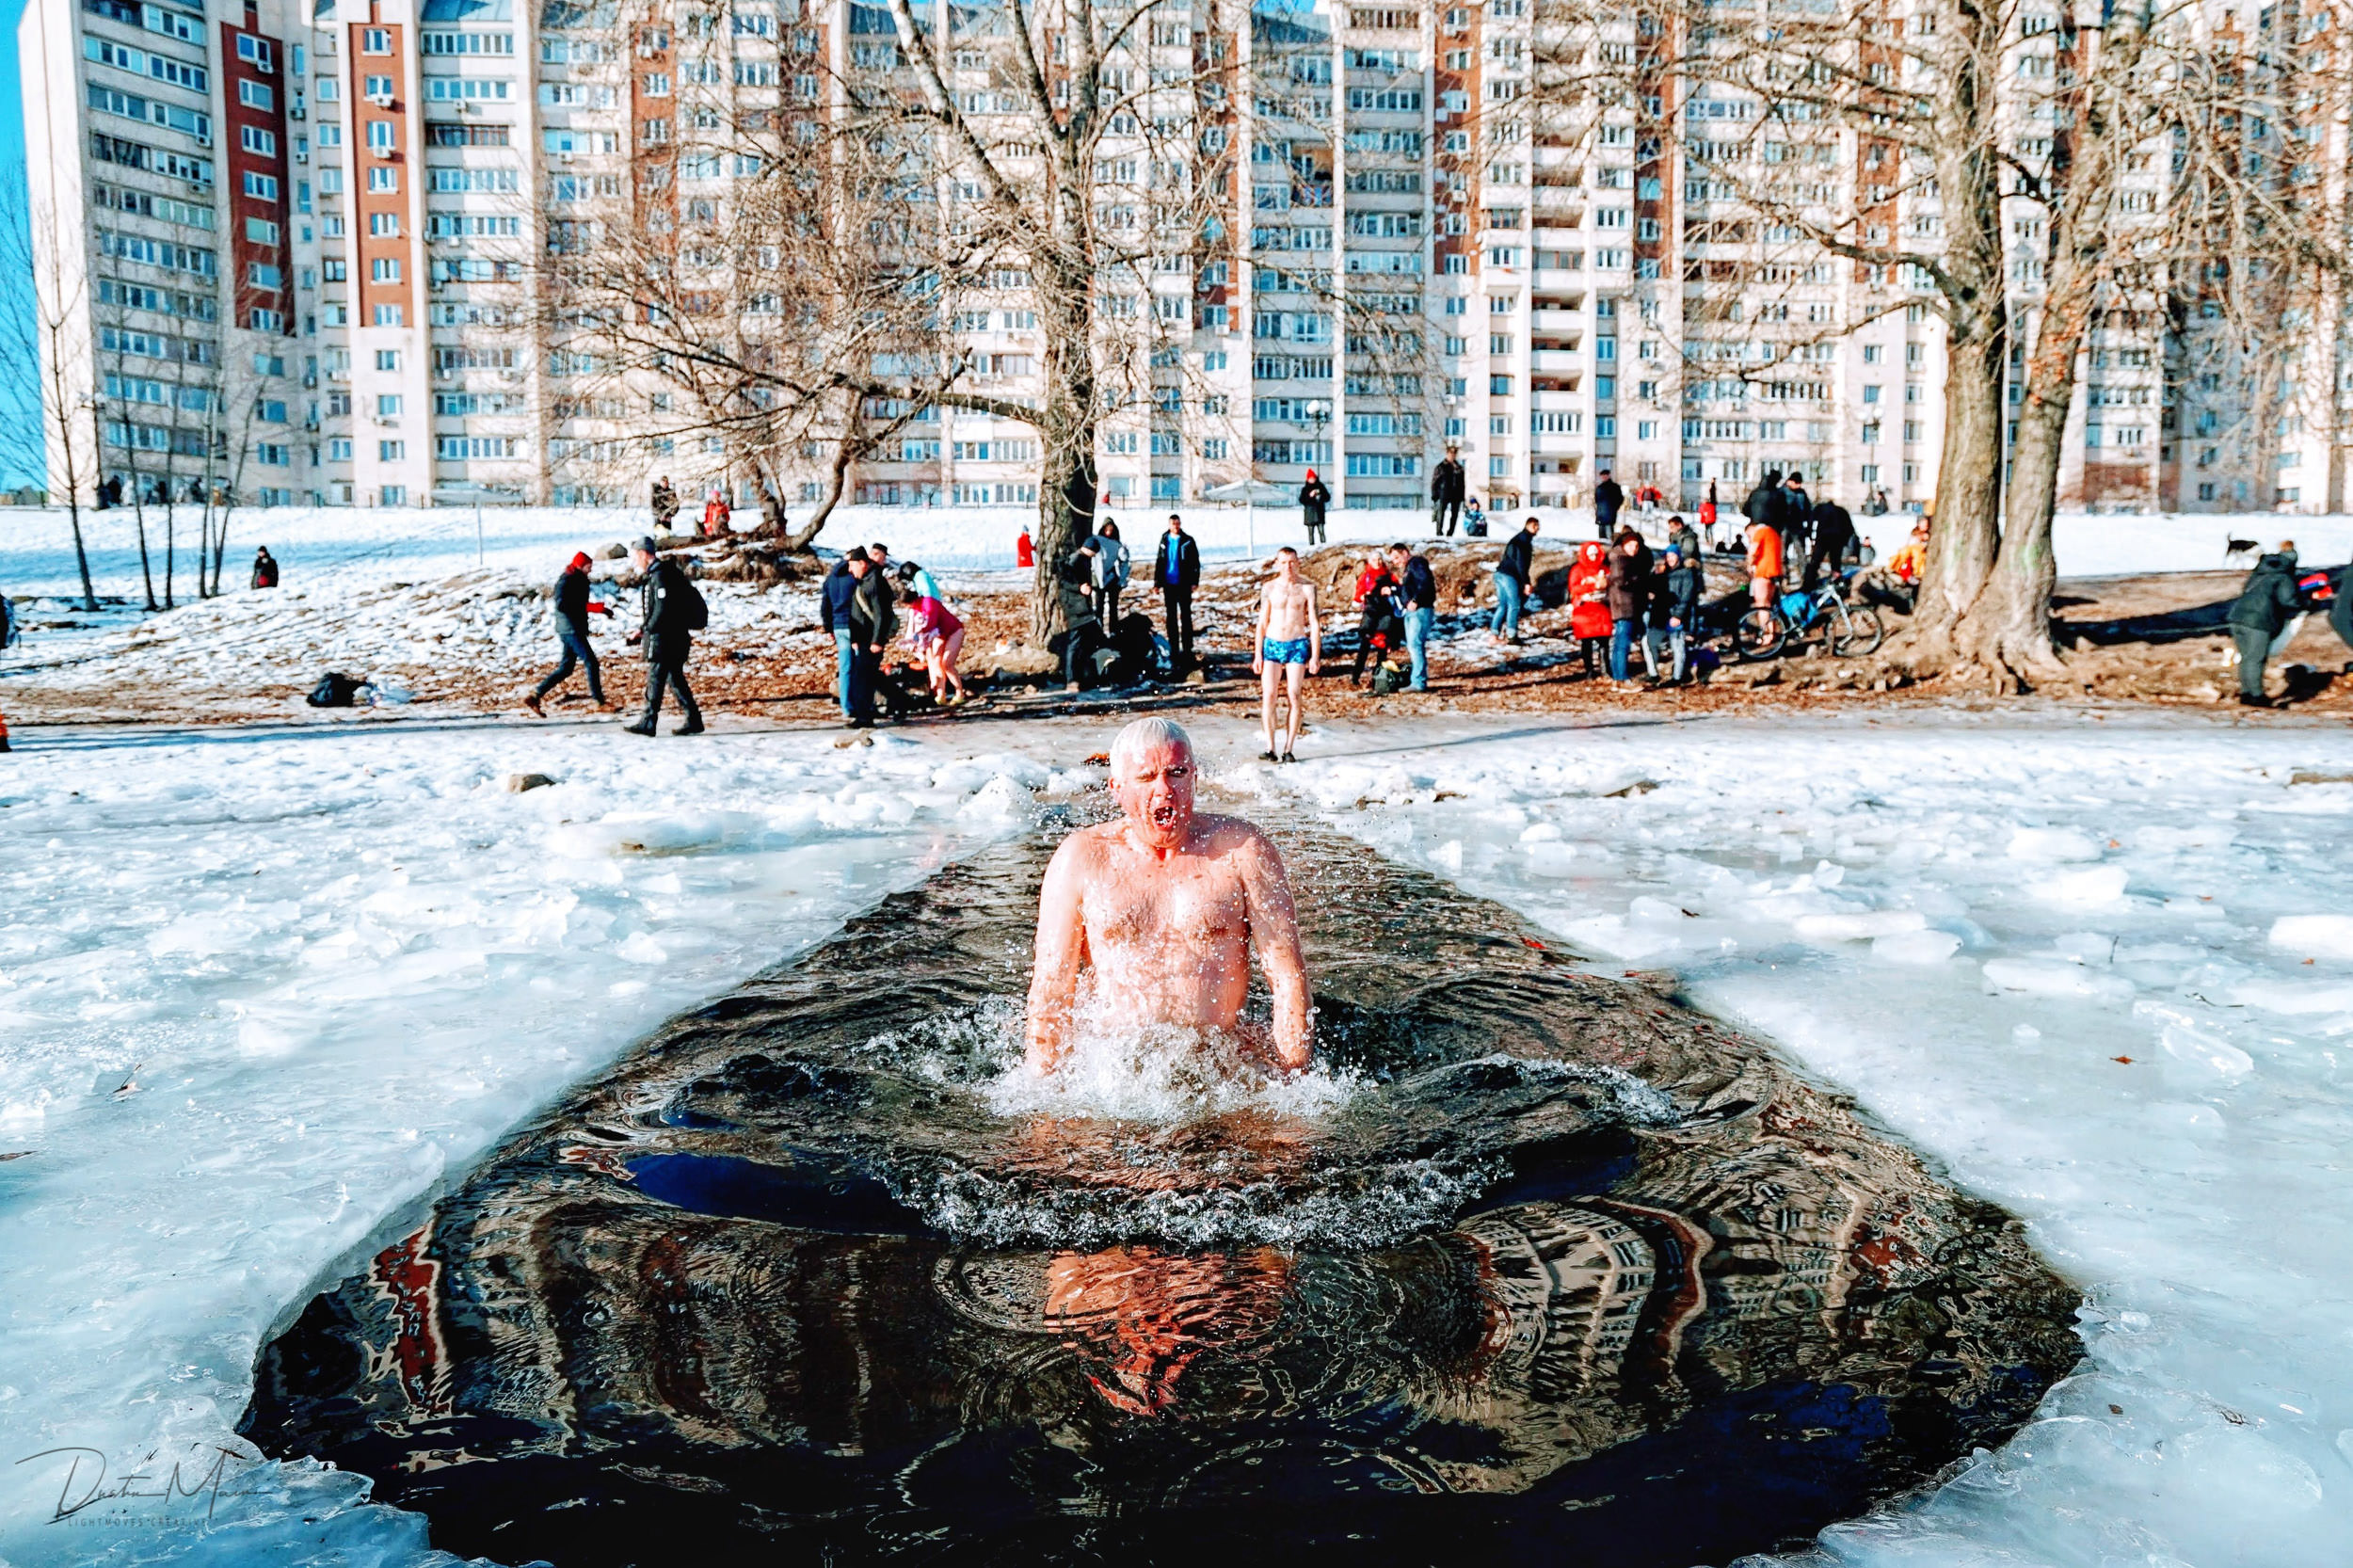 Man gasps for air after dunking himself in the waters of the Dnieper River for the Epiphany celebrations in Kyiv on January 19th. © Dustin Main 2019